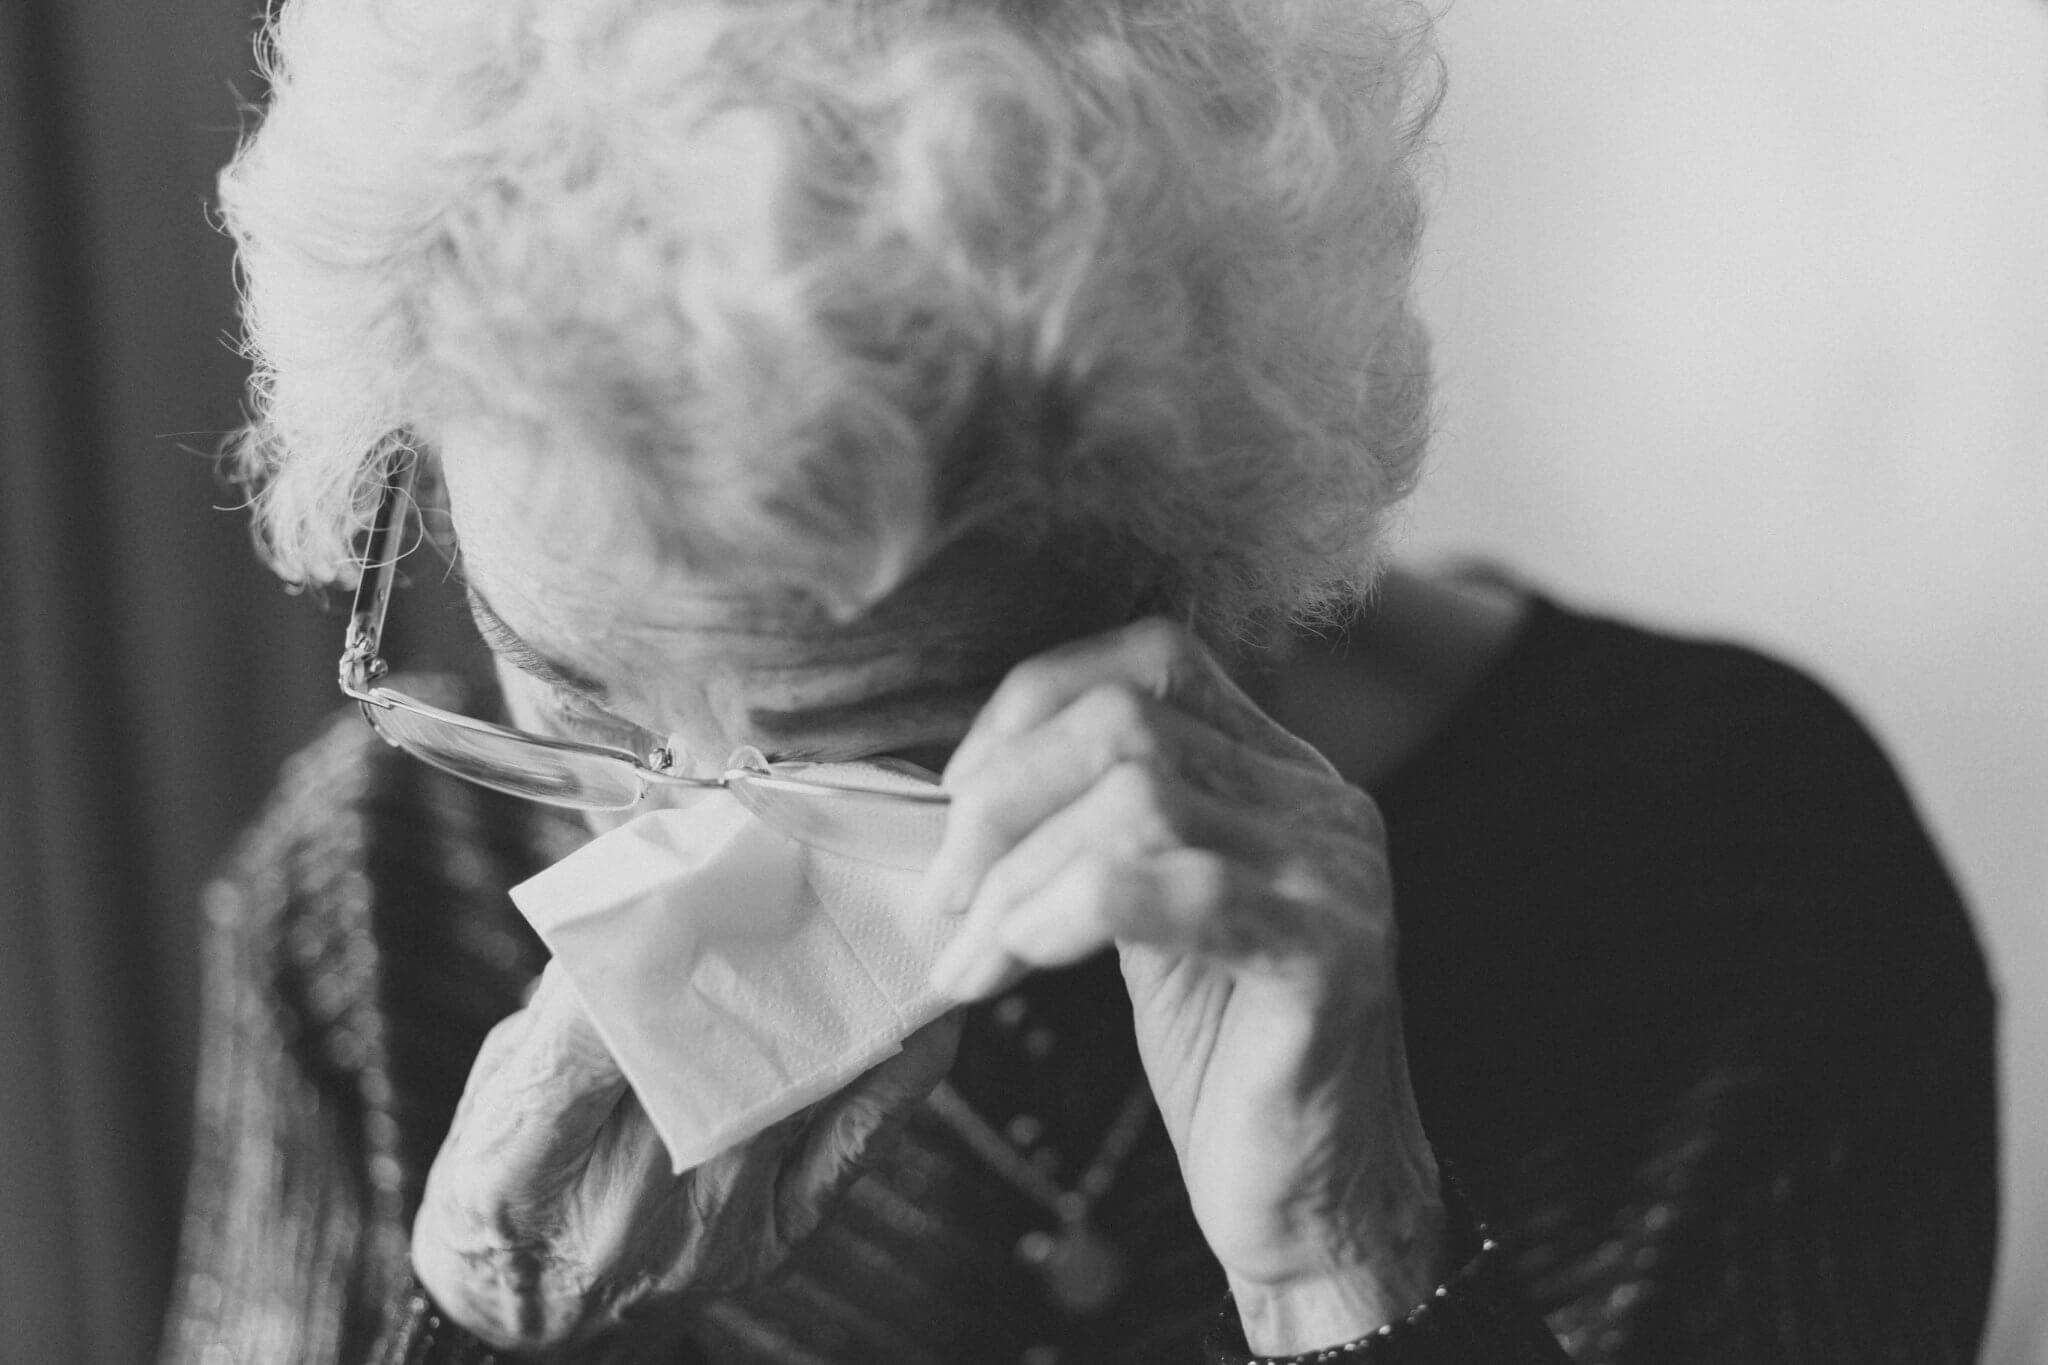 An Elderly Woman Fooled by Scammers, and Loses Nearly Her Entire Life Savings